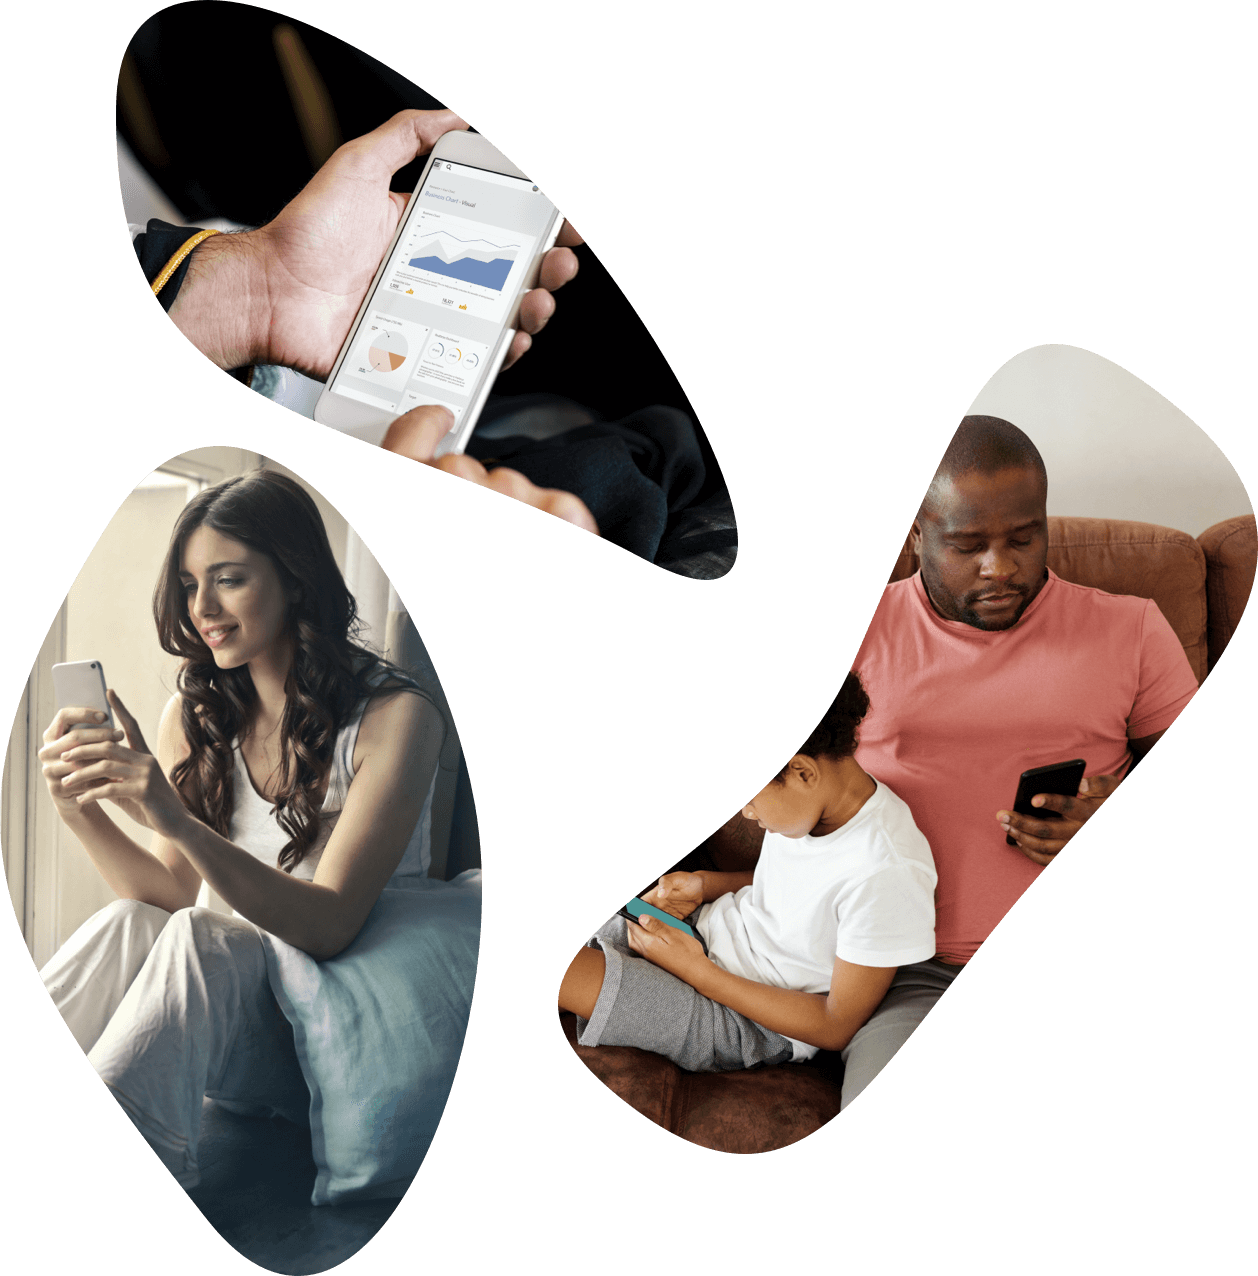 Collage of 3 images contained in organic shapes. 1. Close up of persons hands holding phone, showcasing data.  2. Woman sitting on floor on her phone. 3. Father and son on couch, father looking at phone.